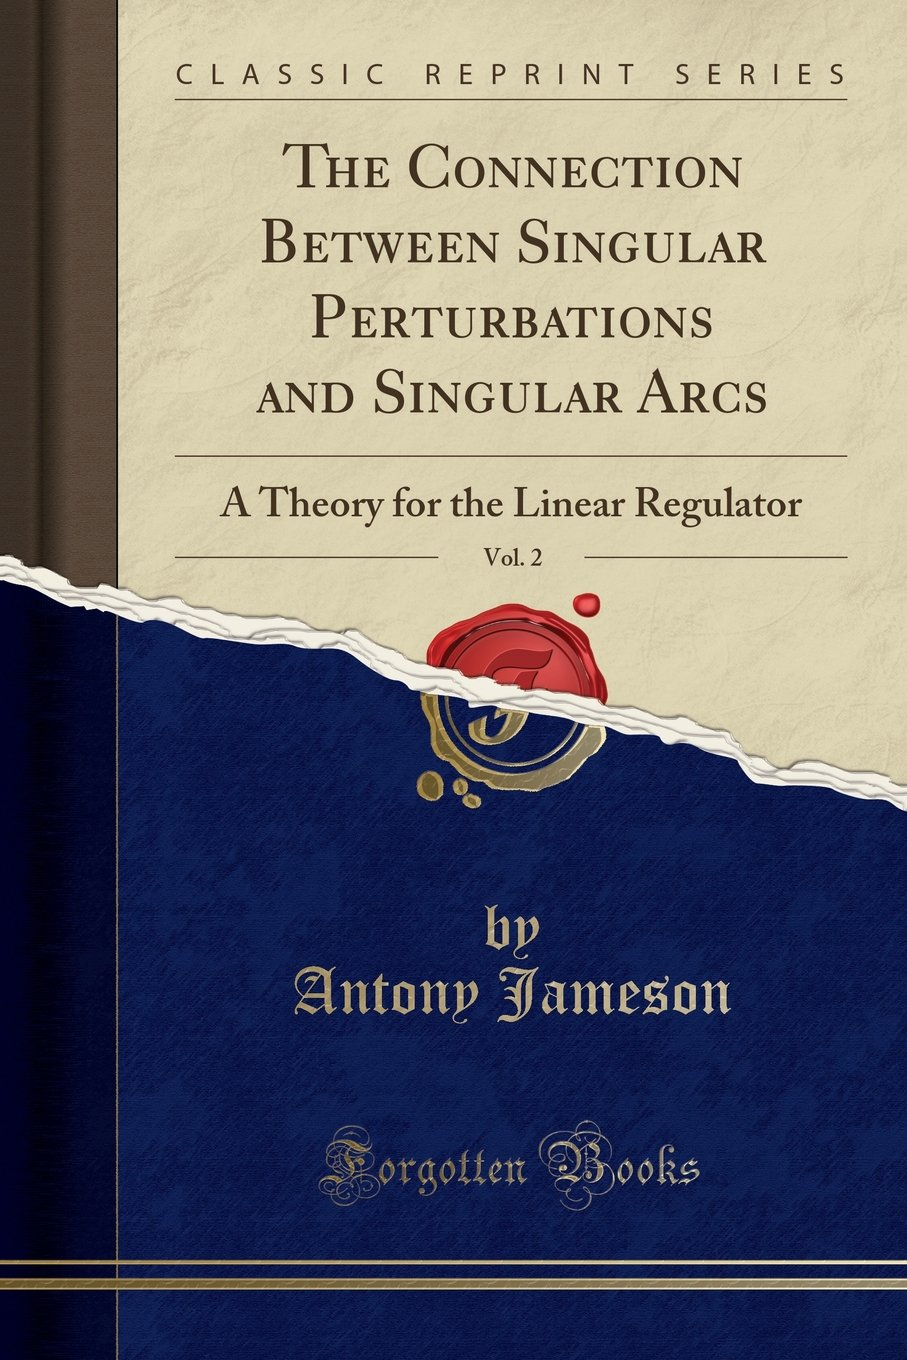 The Connection Between Singular Perturbations and Singular Arcs, Vol. 2: A Theory for the Linear Regulator (Classic Reprint) PDF